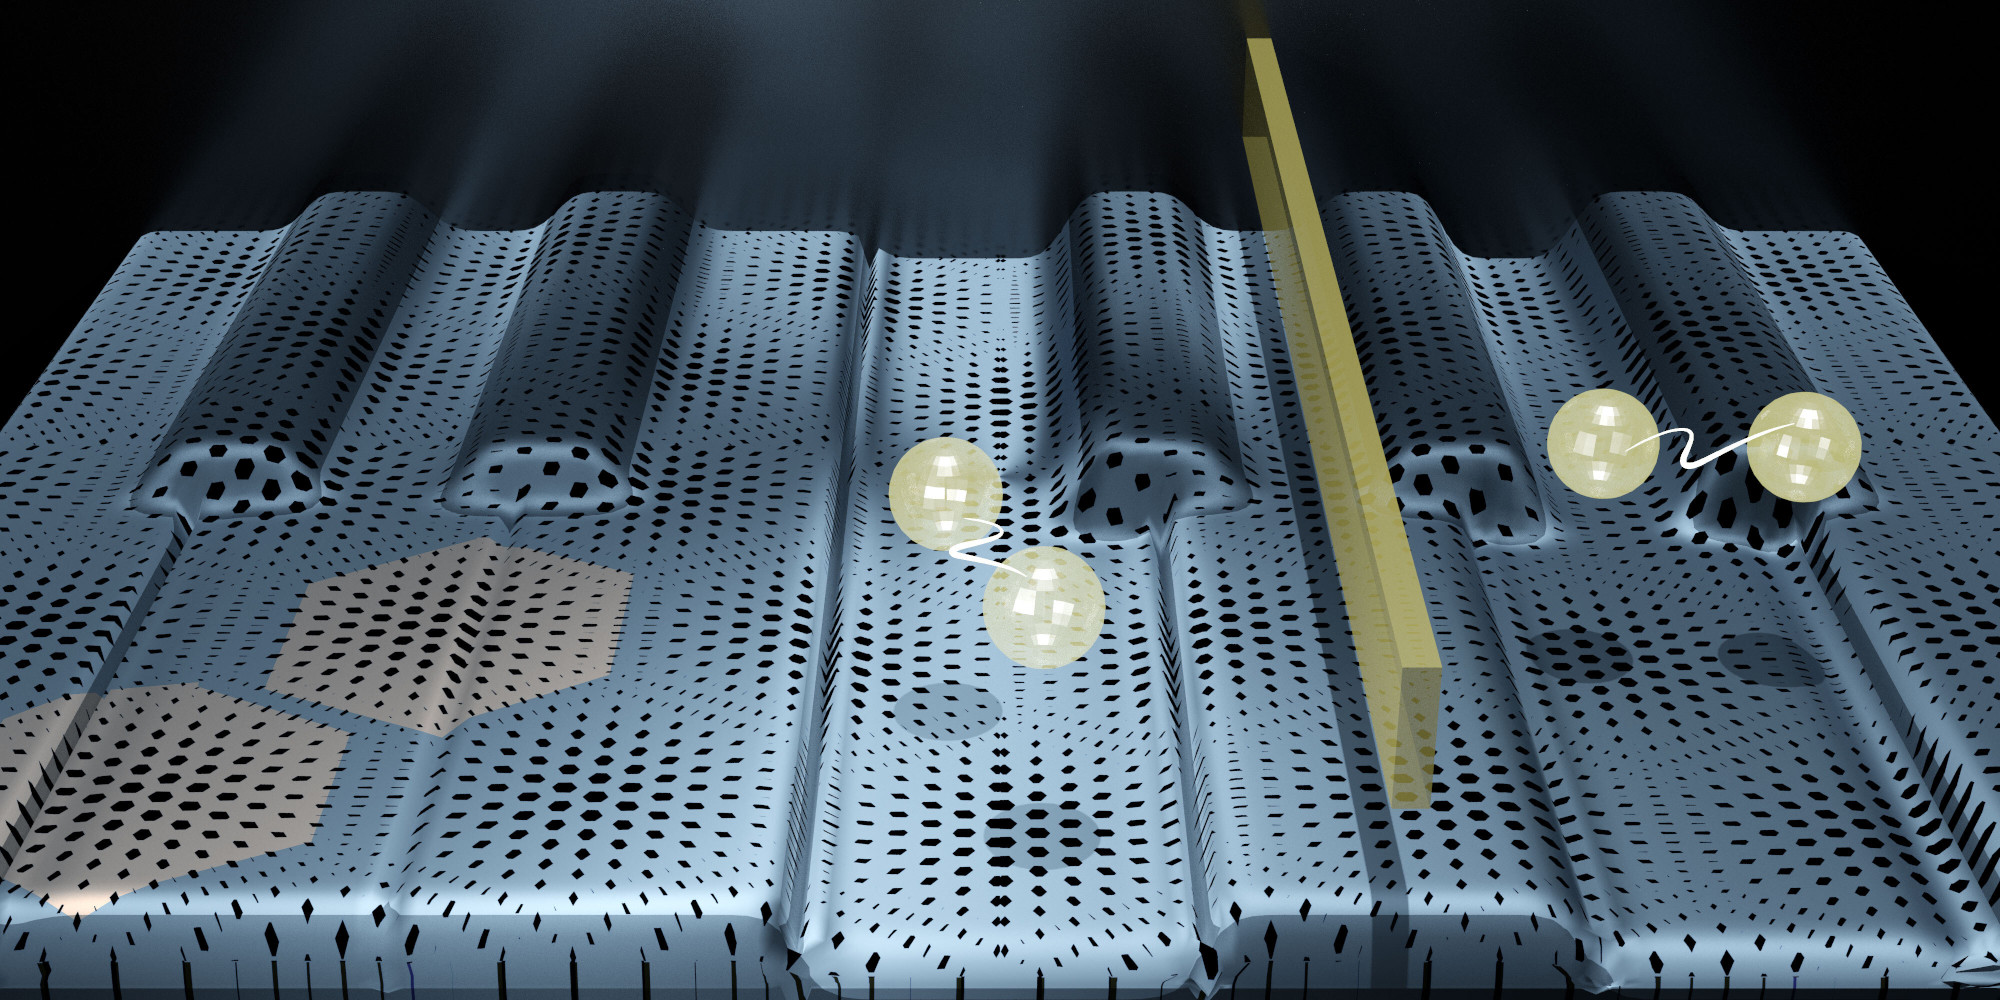 Researchers have created graphene electronic devices that are both insulators and superconductors at the same time, in different parts of the material